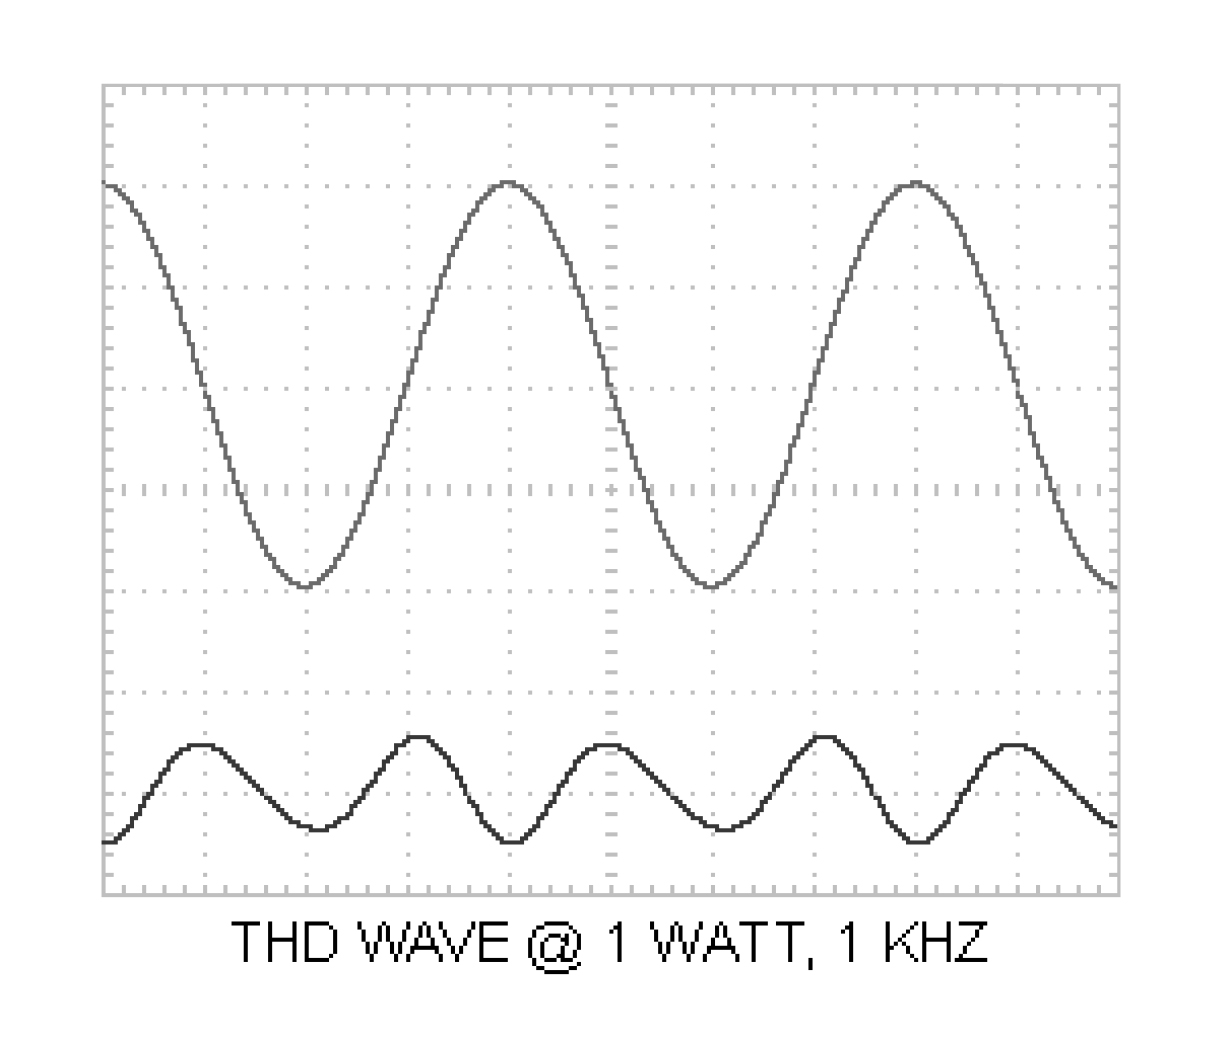 First Watt Wave Image